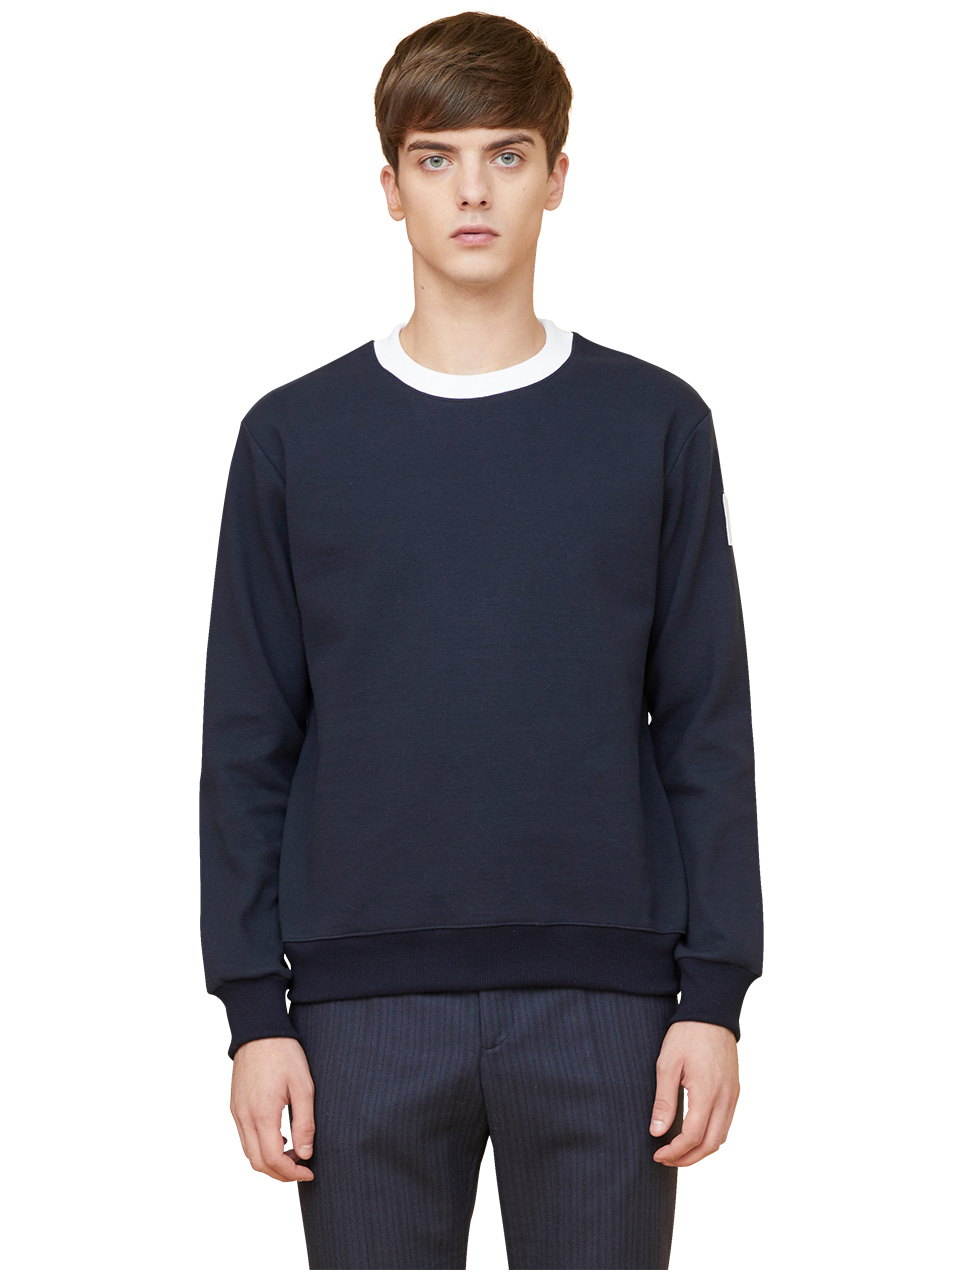 arm patch sweatshirts - navy